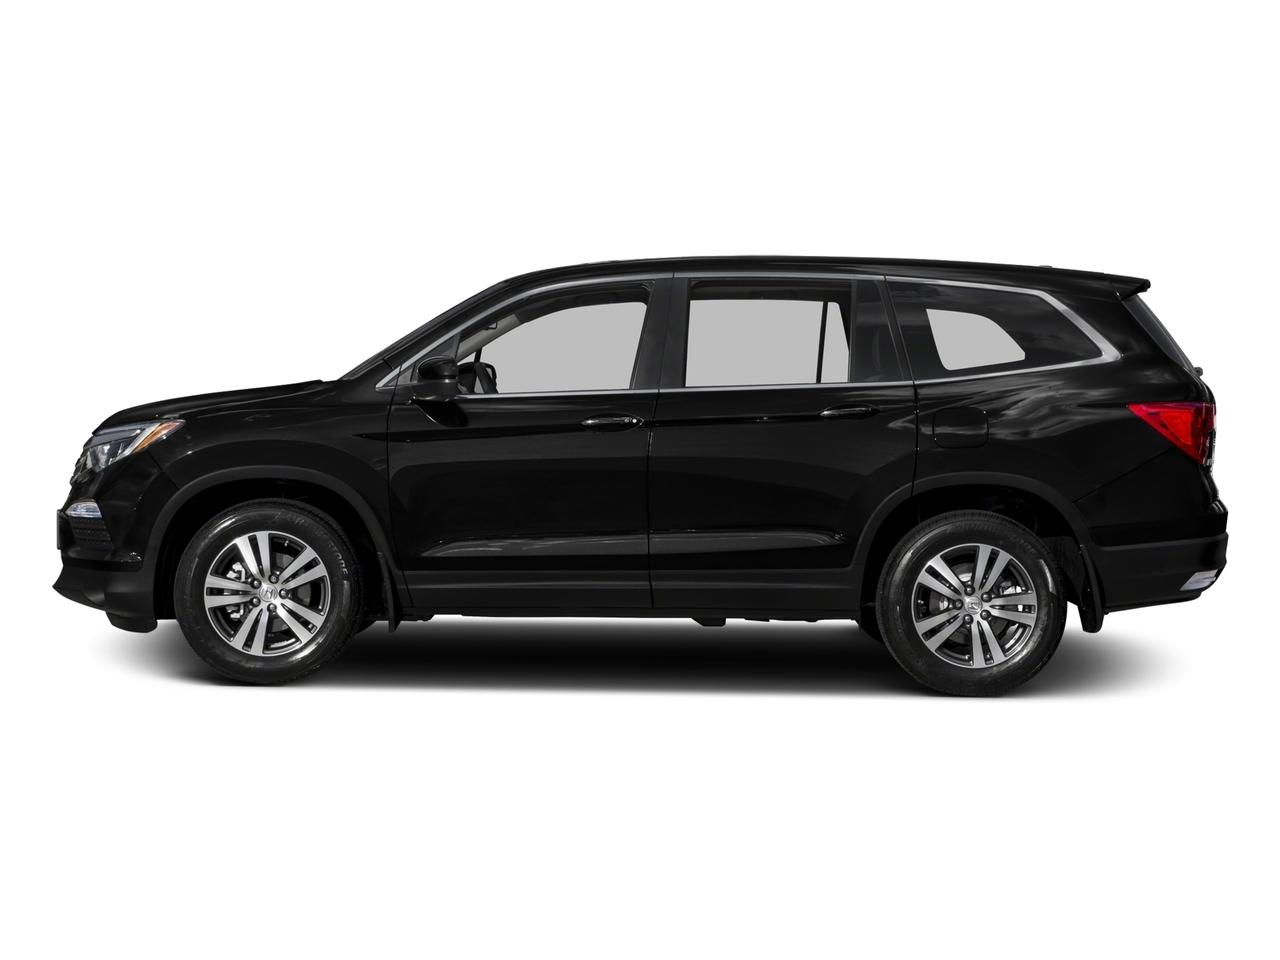 Used 2016 Honda Pilot EX-L with VIN 5FNYF6H87GB062165 for sale in Staples, Minnesota